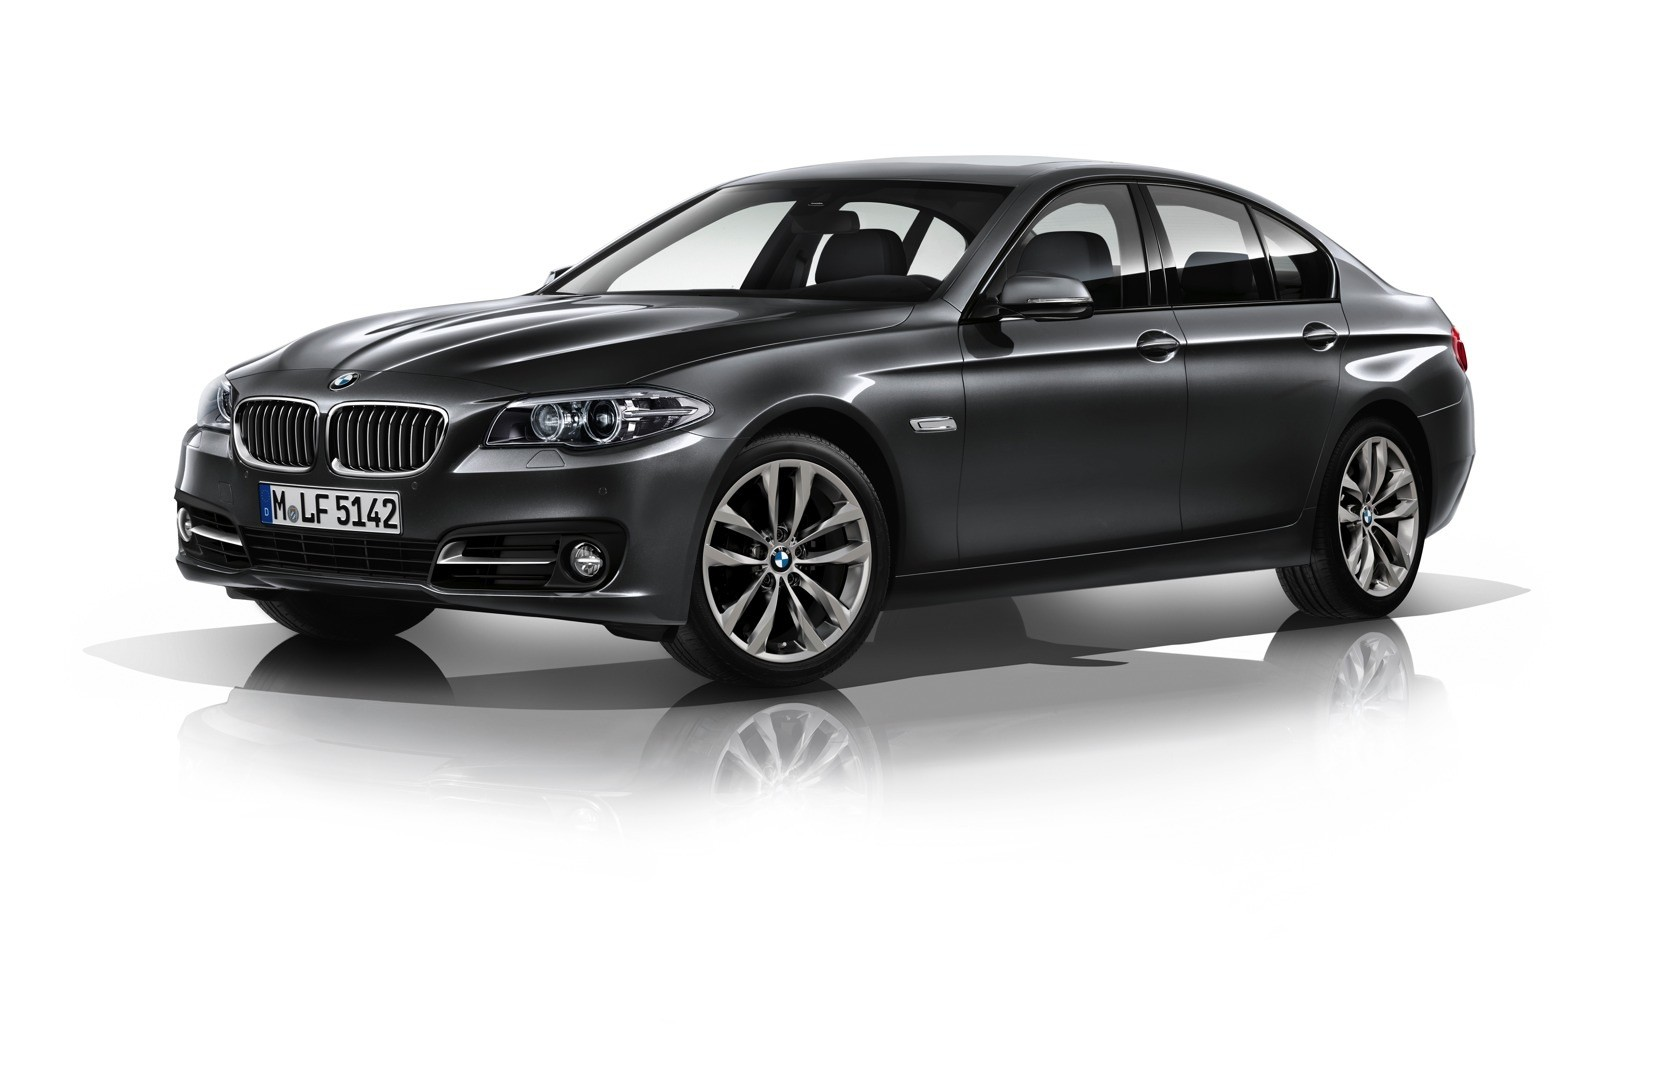 bmw 5 series edition sport coming this march autoevolution. Black Bedroom Furniture Sets. Home Design Ideas